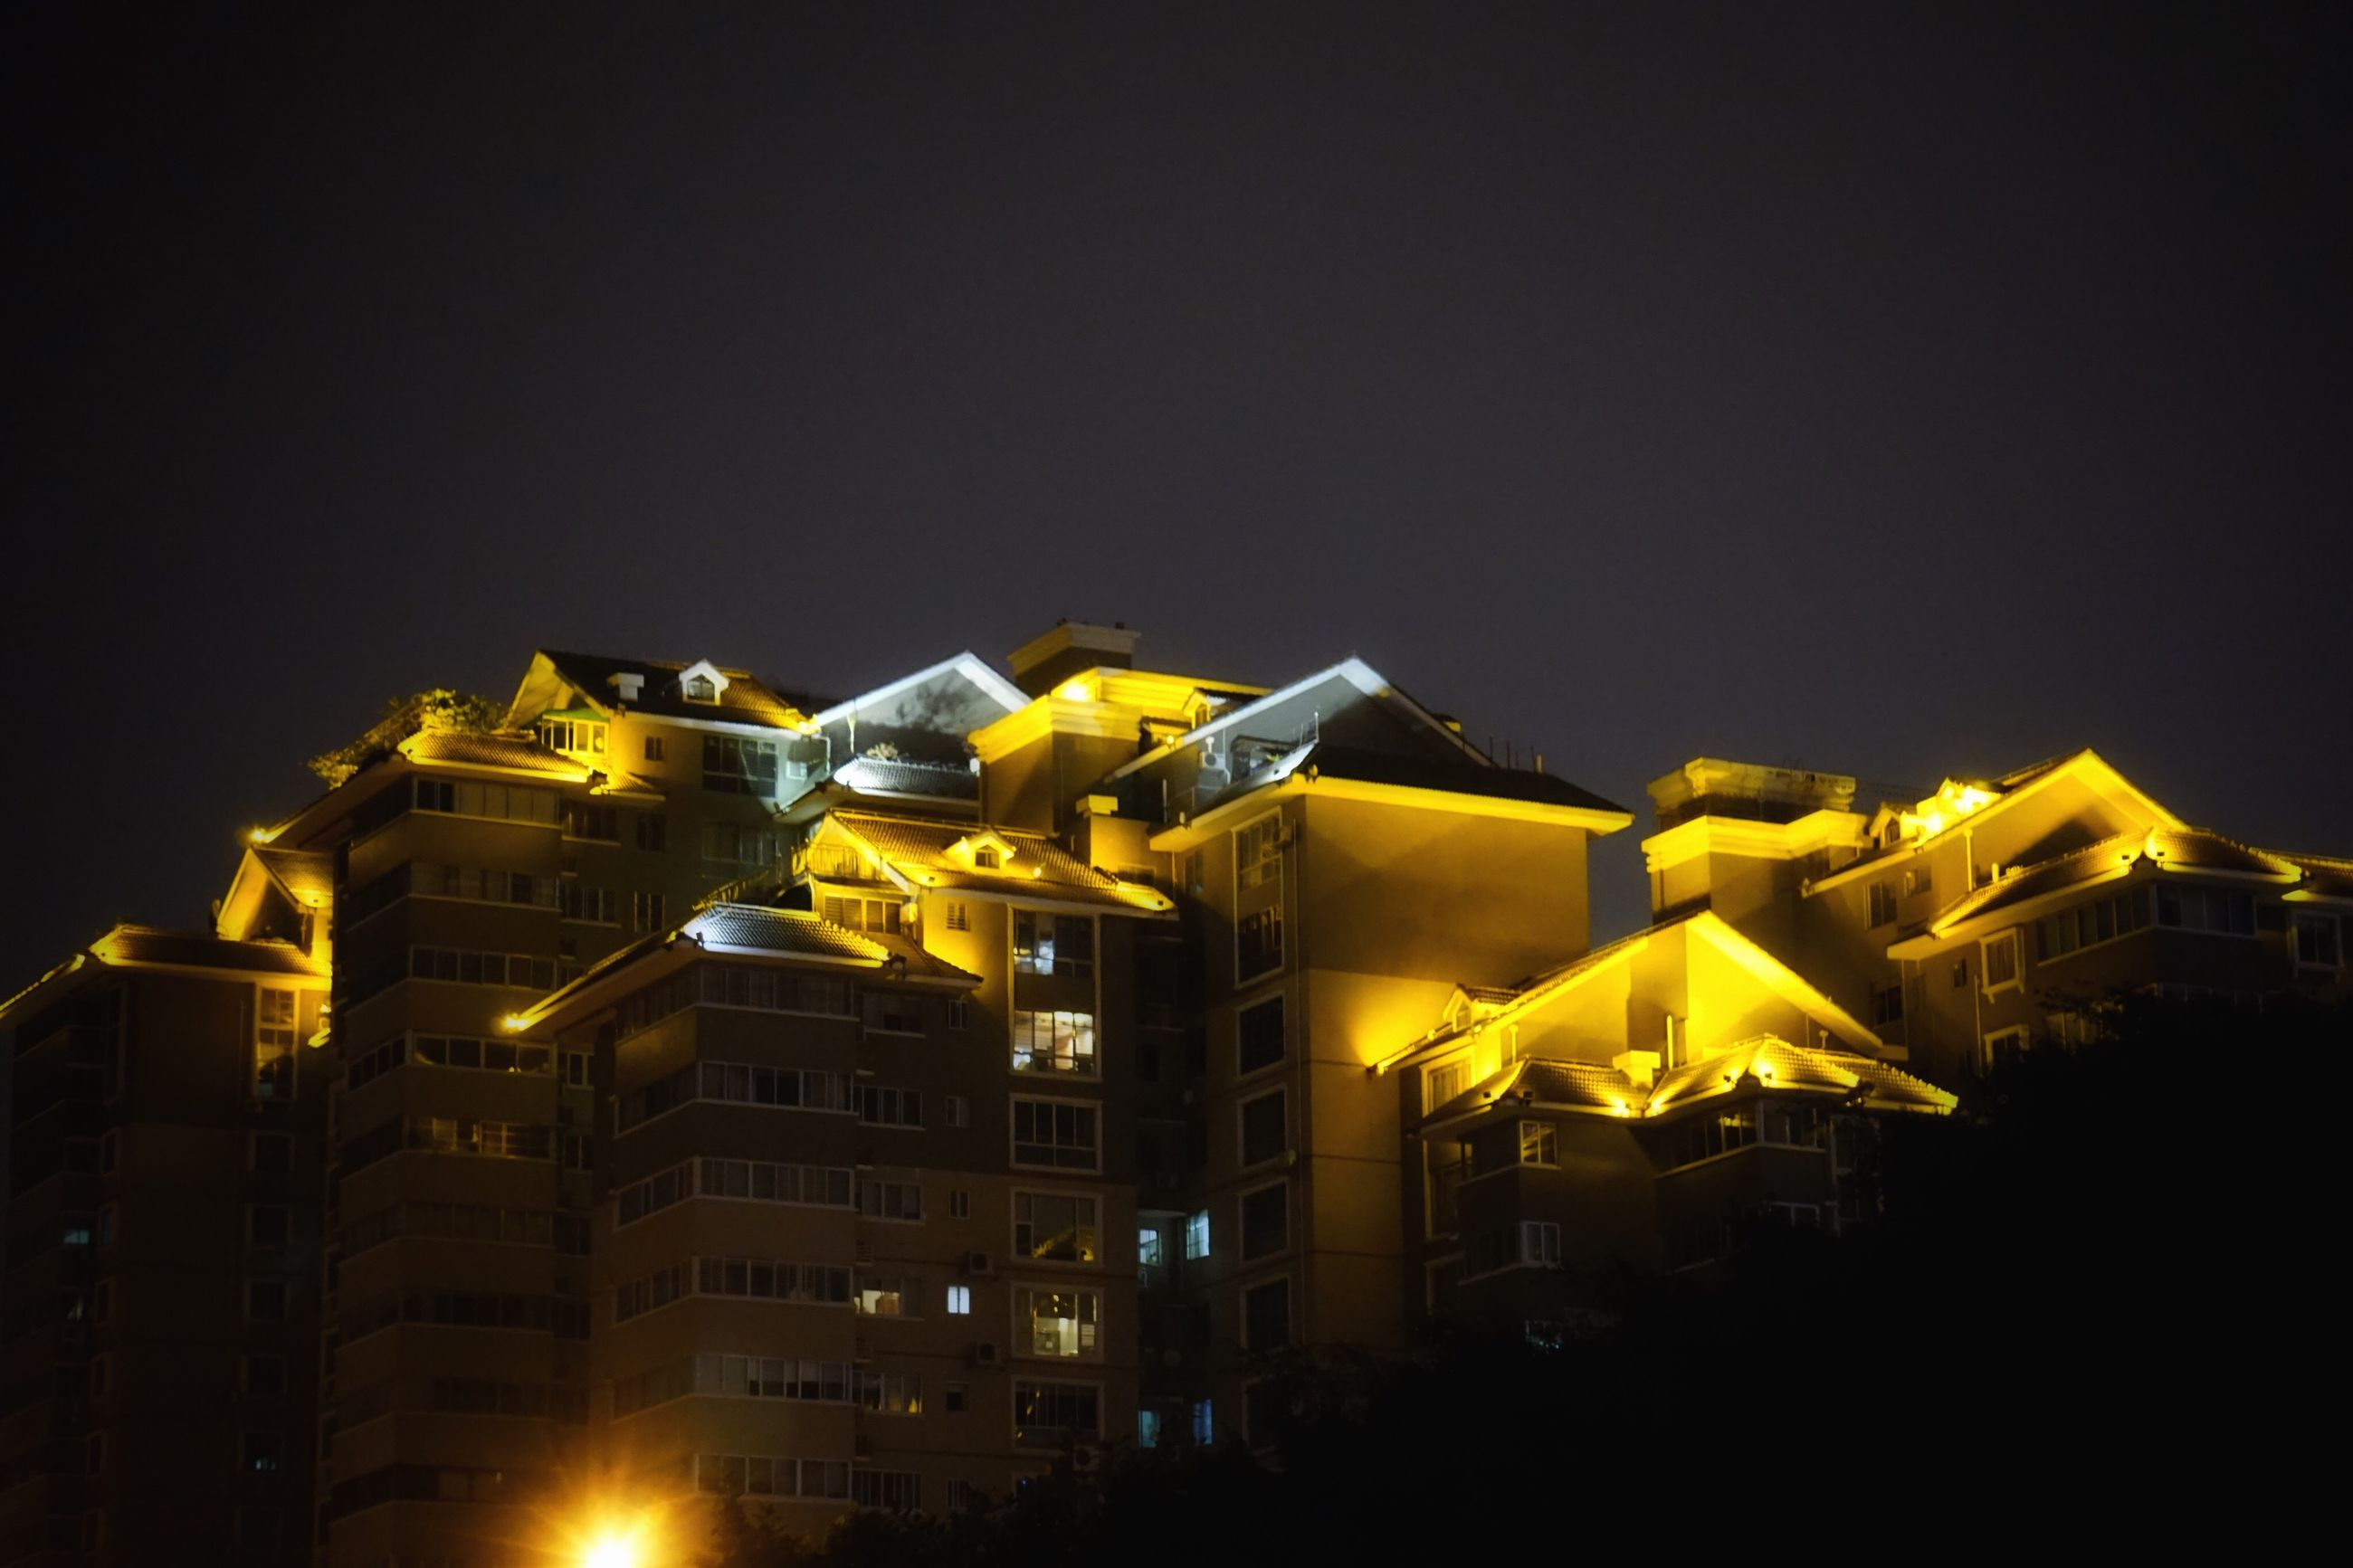 architecture, building exterior, built structure, illuminated, night, city, residential building, low angle view, clear sky, yellow, travel destinations, apartment, sky, outdoors, city life, residential district, facade, no people, tourism, spire, building story